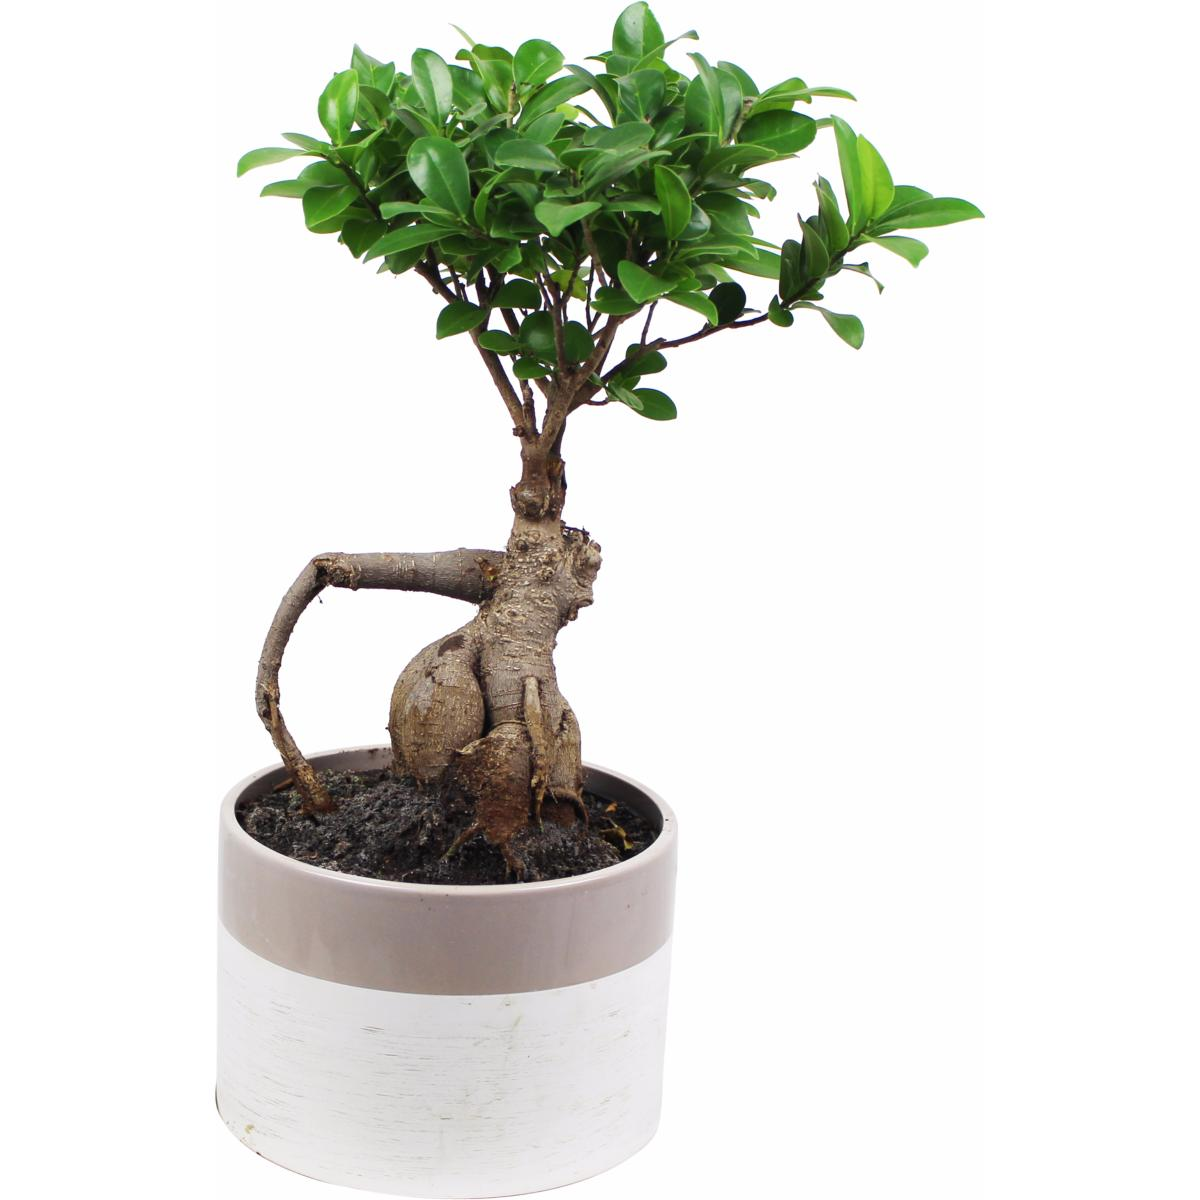 la fontaine fleurie bonsai ficus ginseng cleo. Black Bedroom Furniture Sets. Home Design Ideas